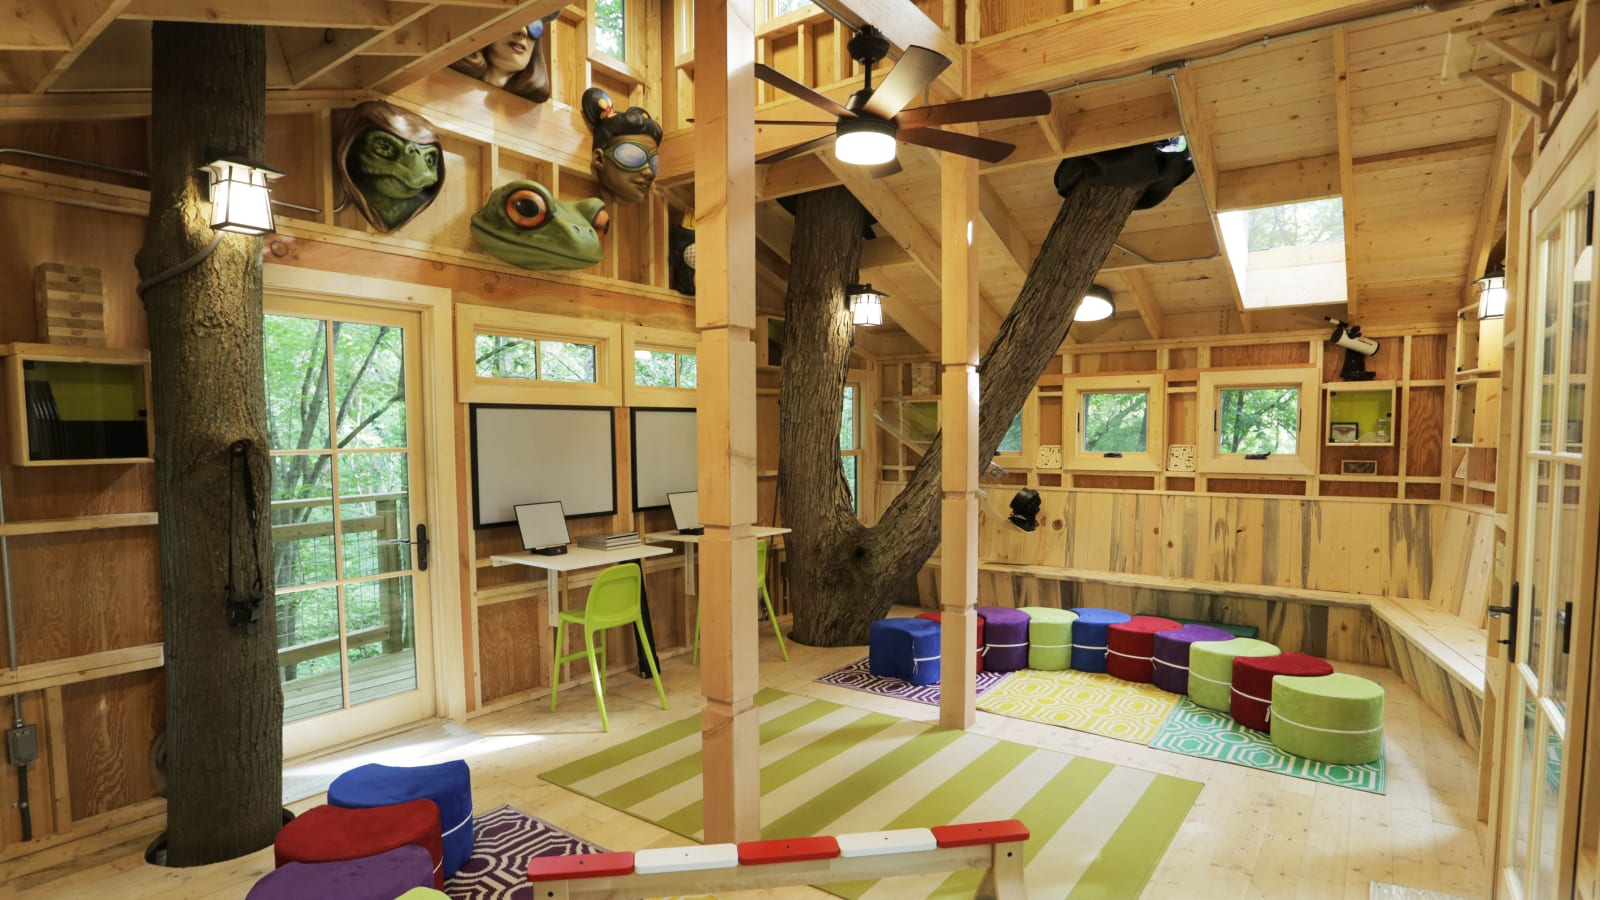 10 Treehouses that Will Delight the Child in You